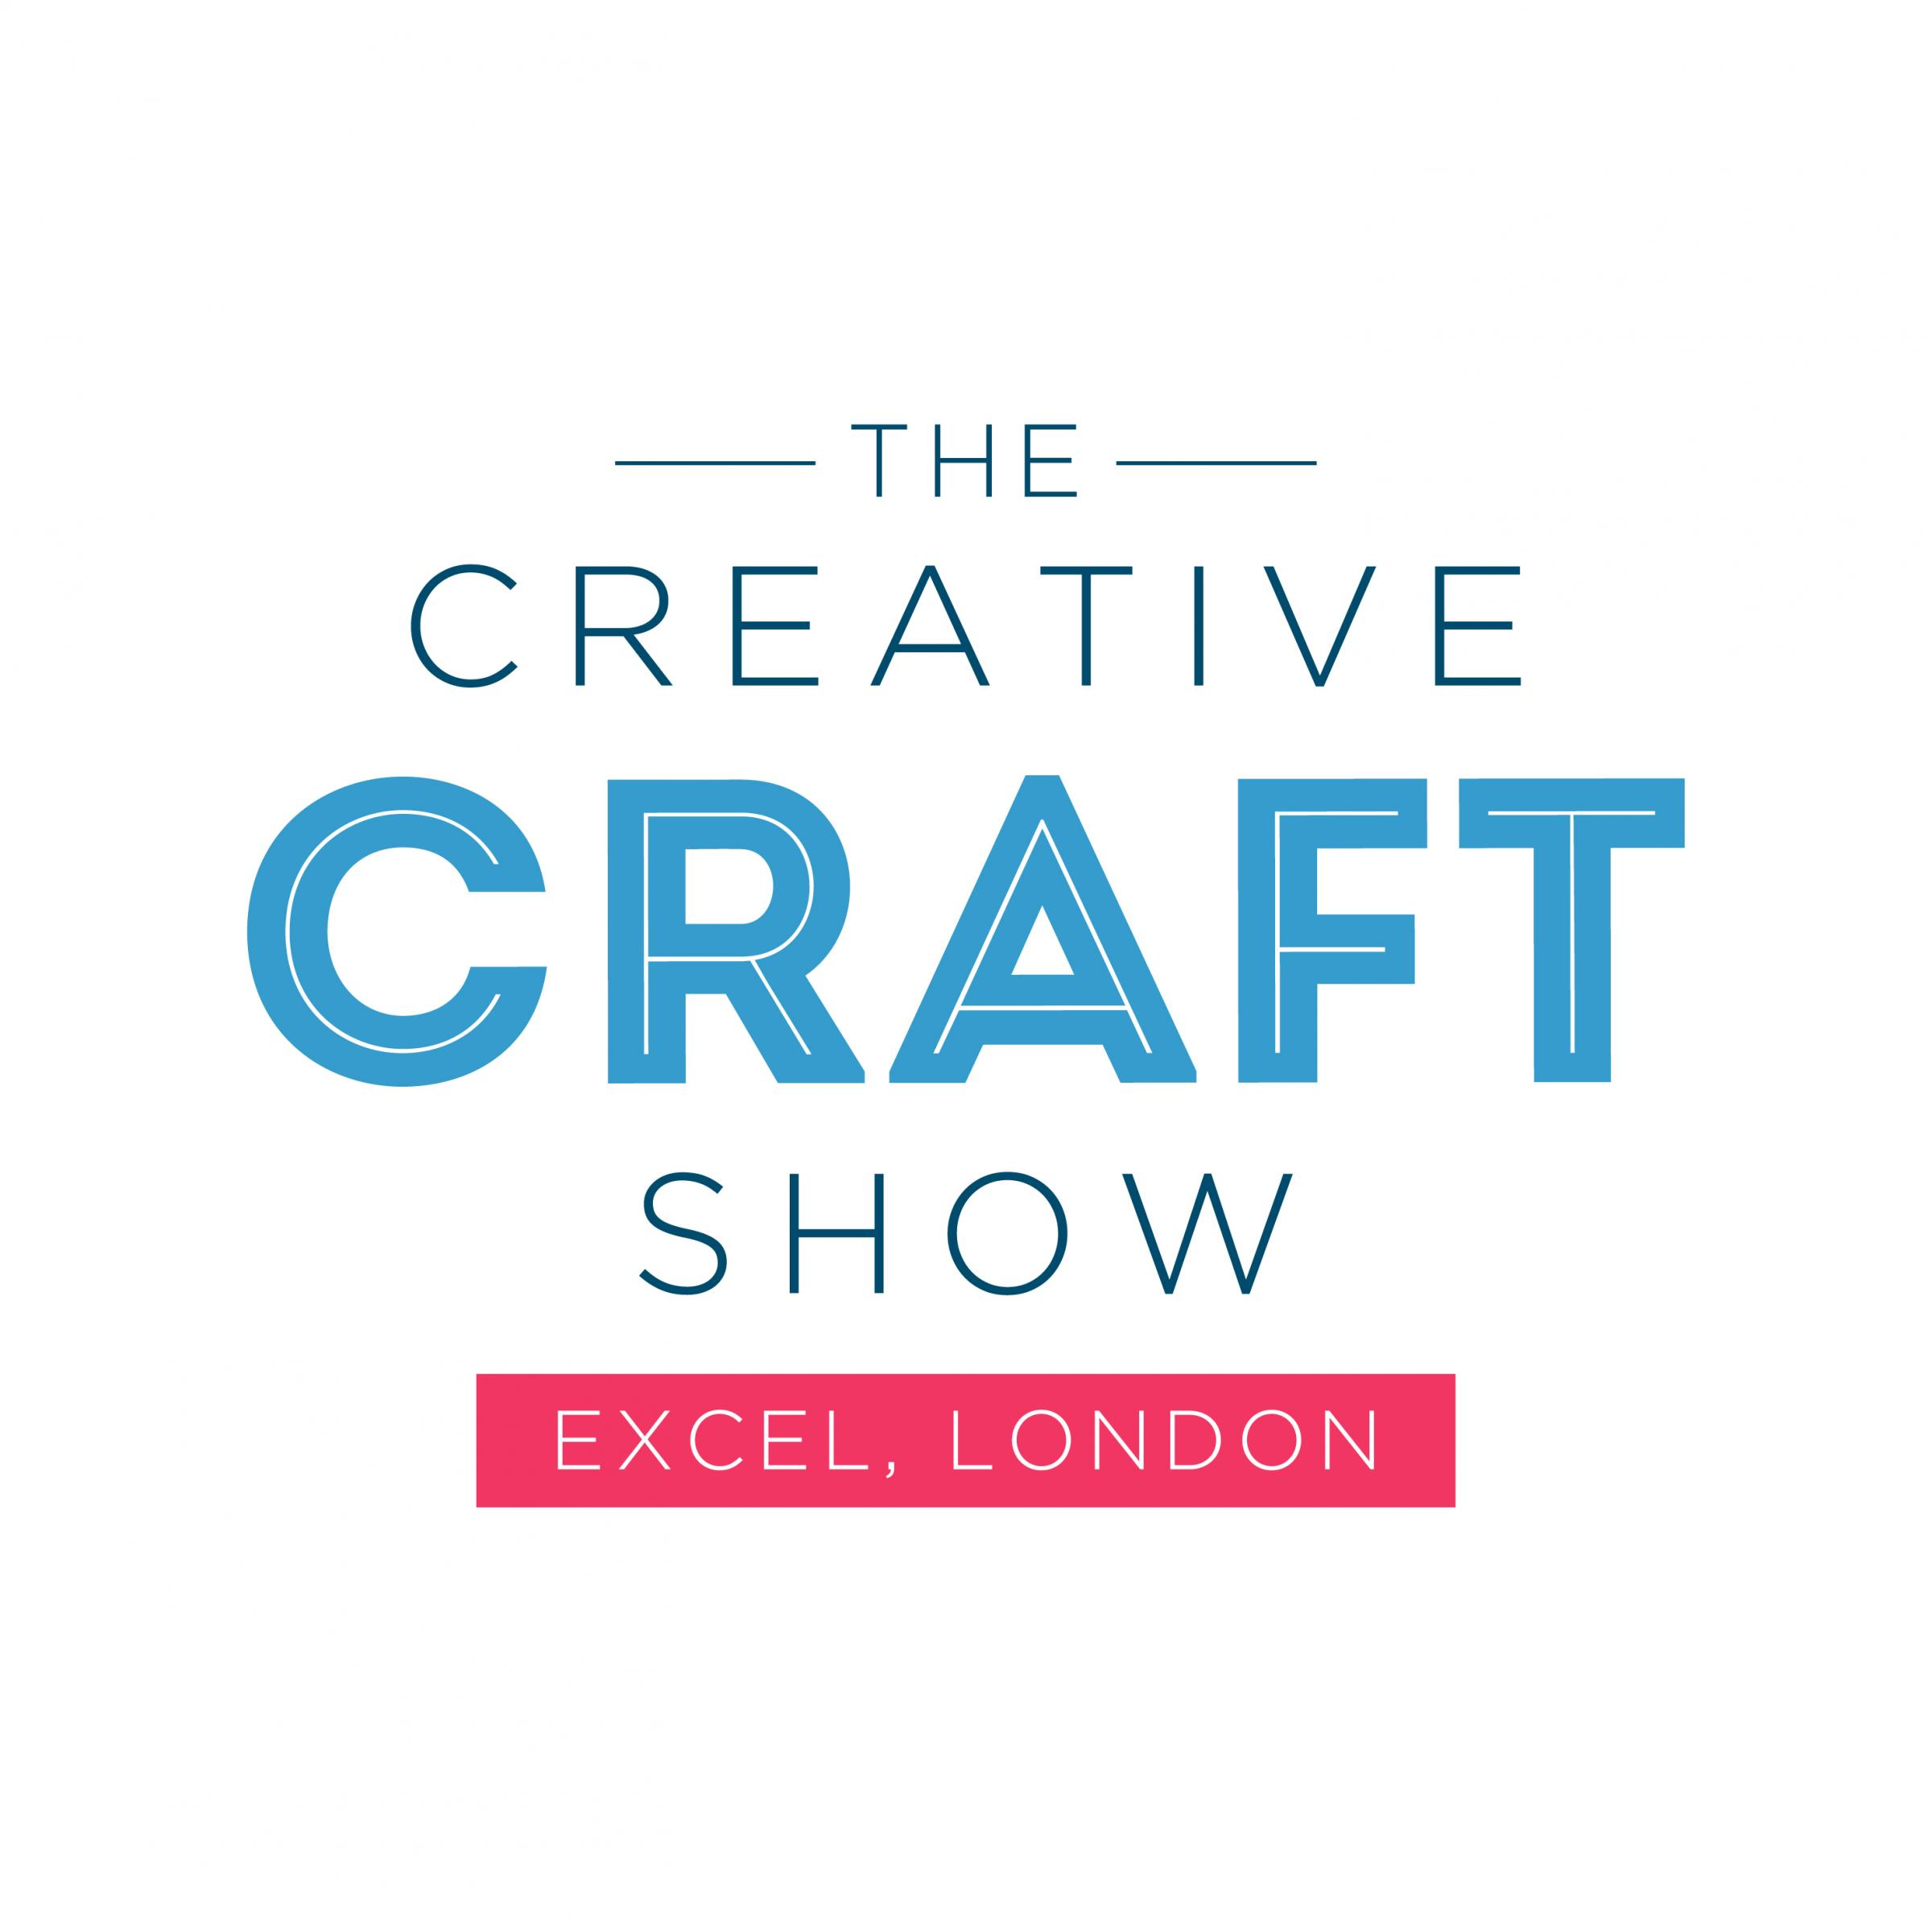 Win tickets to the creative craft show in London